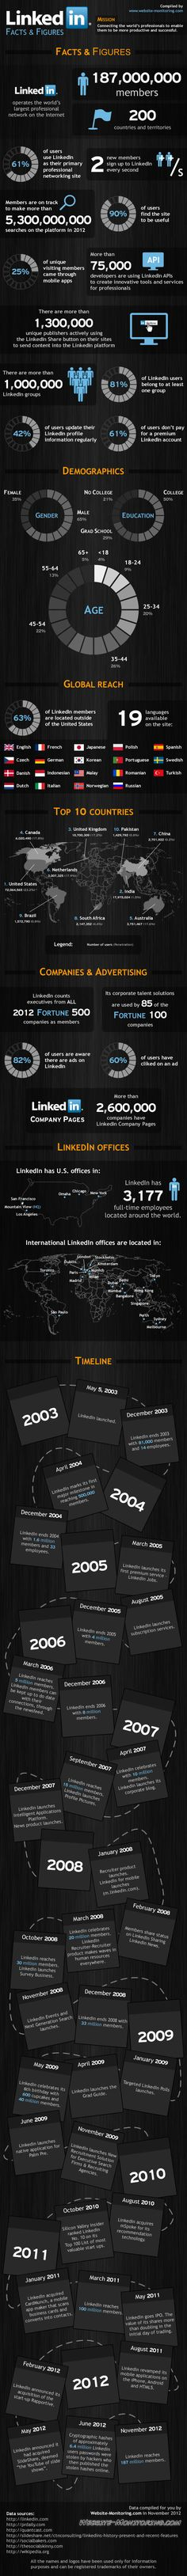 Every Stat You'll Ever Want About LinkedIn (Infographic)